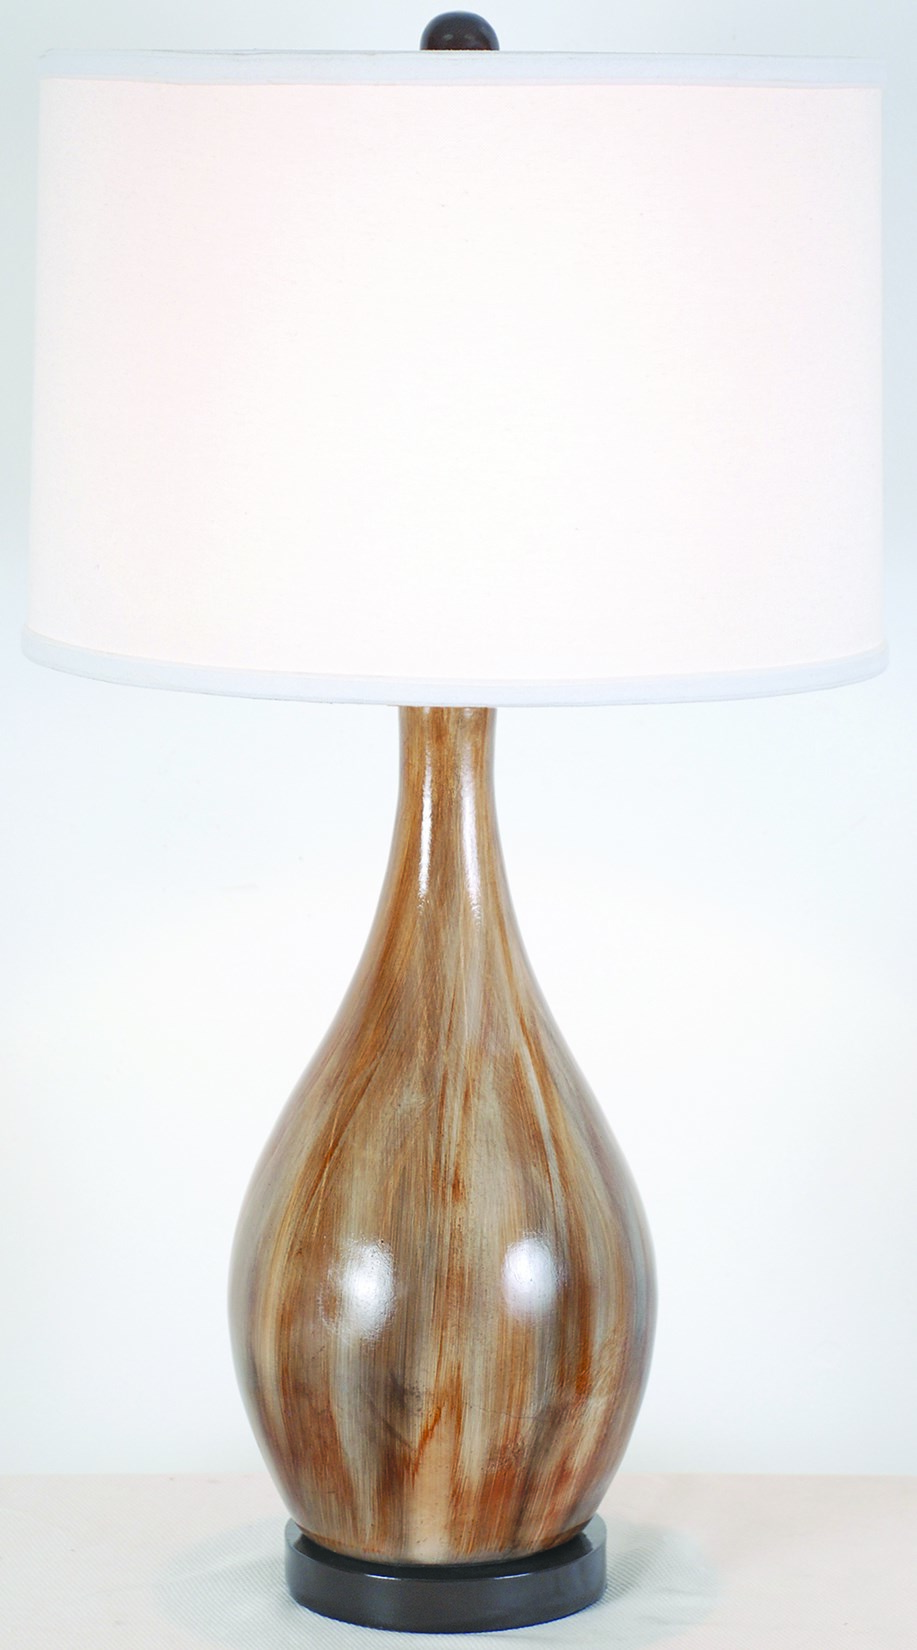 Merveilleux Artisan Lighting U0026 Home Decor, Inc. Image 8